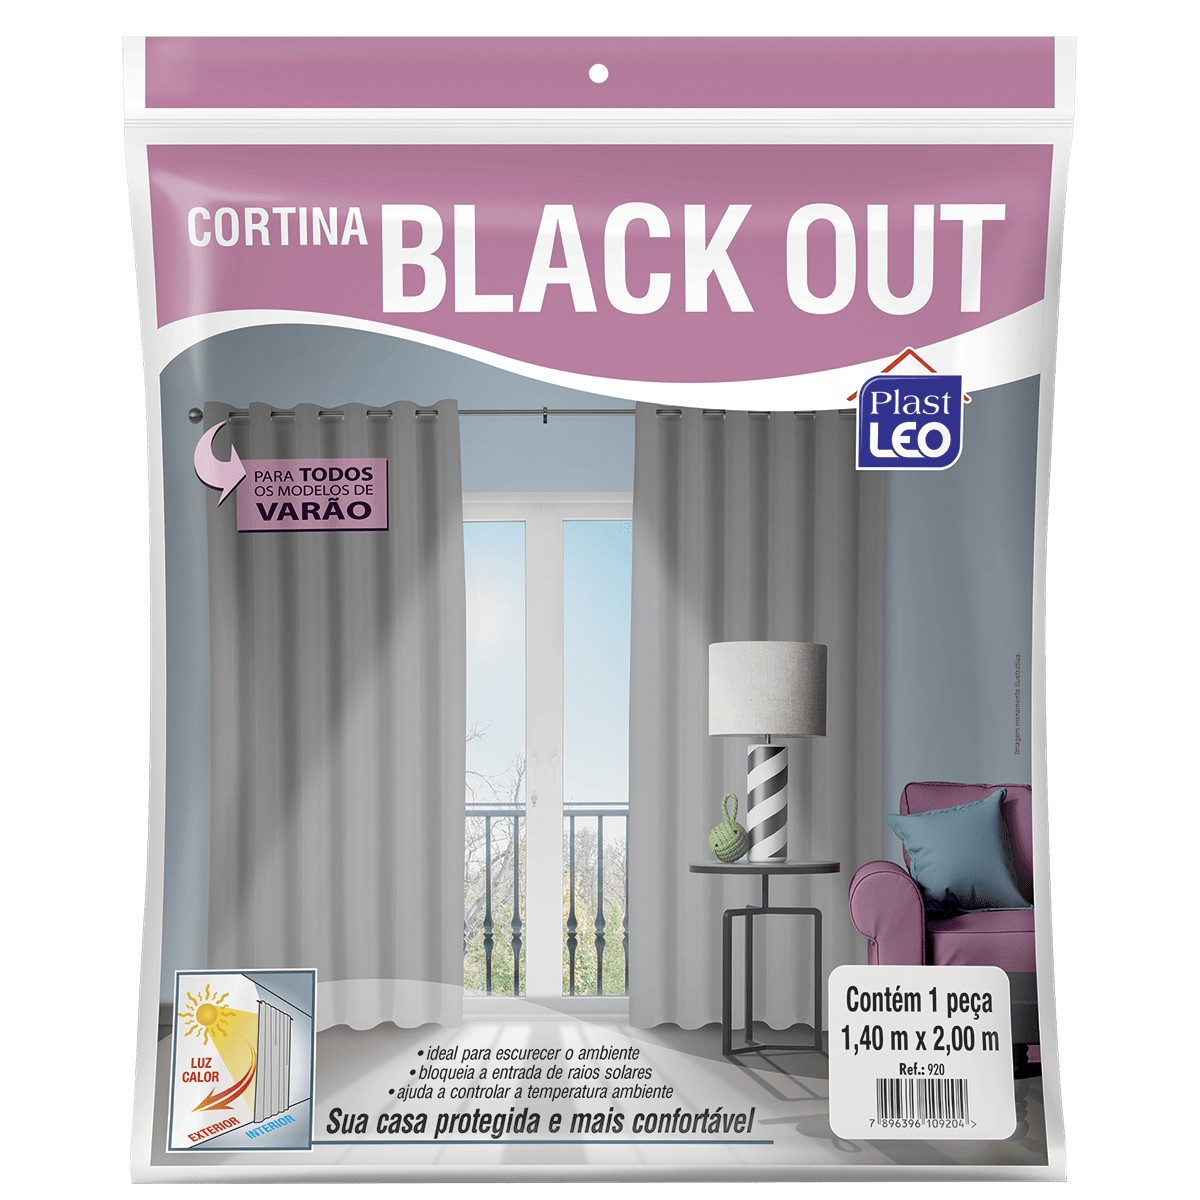 Cortina Black Out para Varão 1,40m X 2,00m 920 Plast Leo